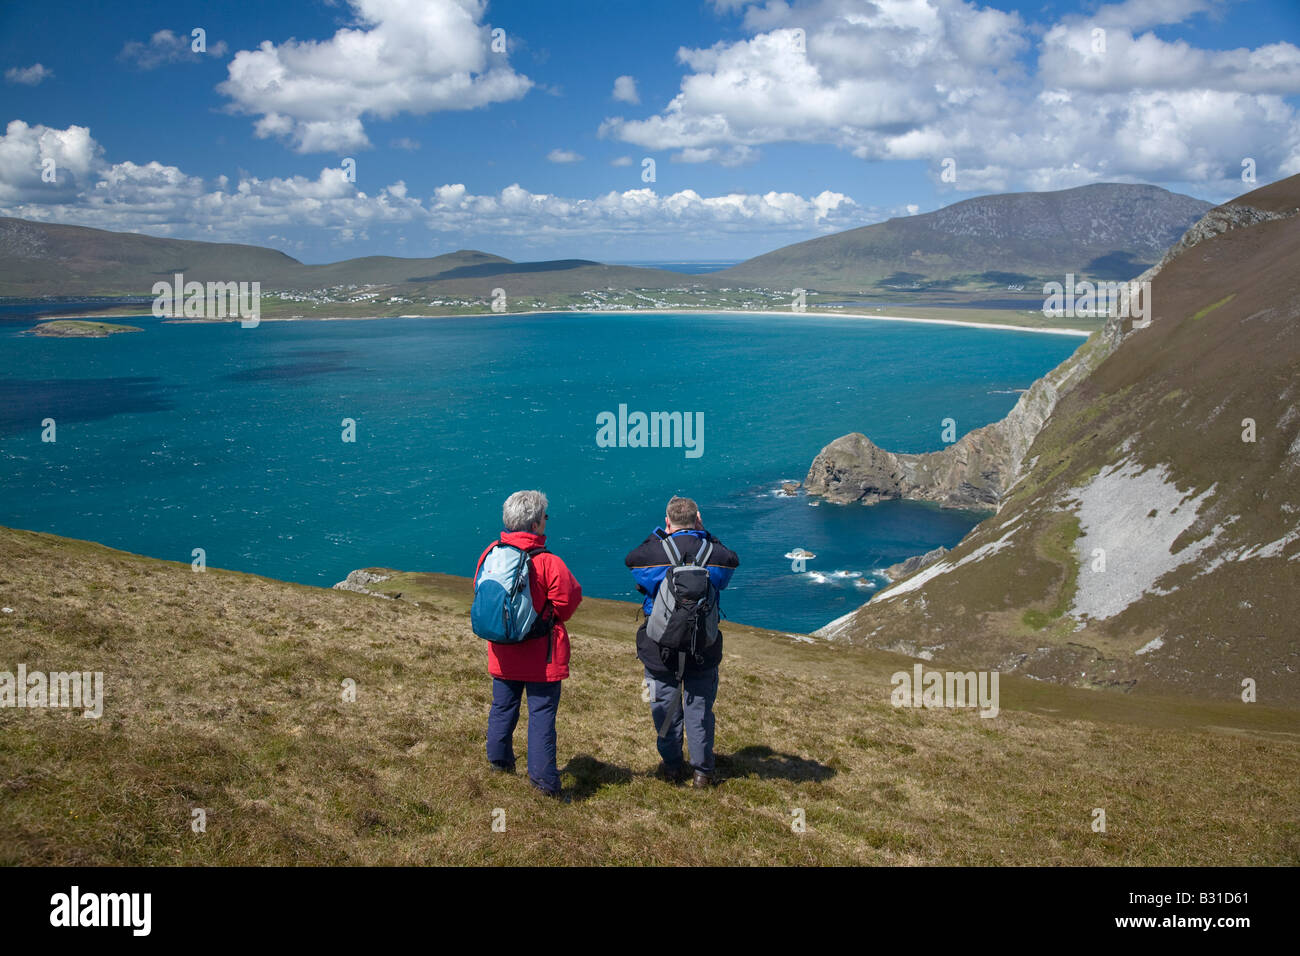 Hikers on the Menawn Cliffs, above Keel Bay. Achill Island, County Mayo, Ireland. - Stock Image